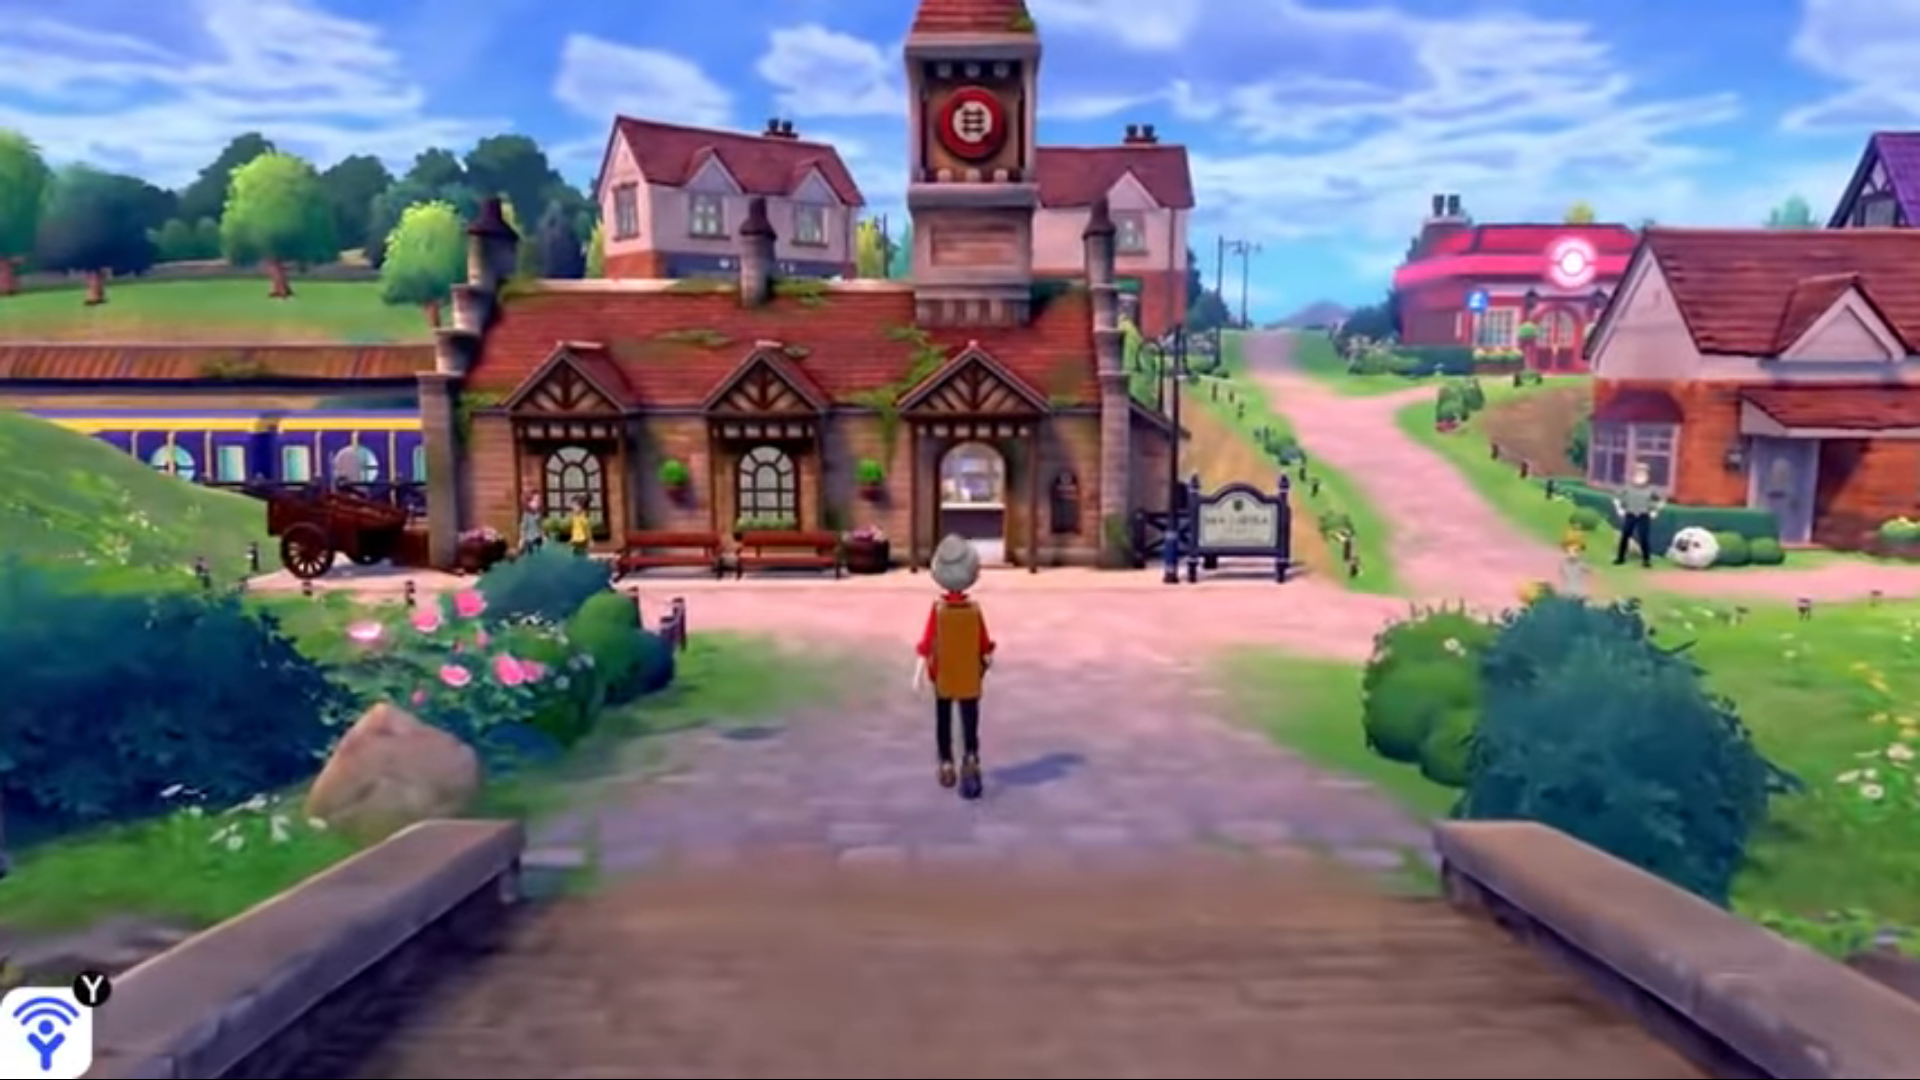 Pokemon Sword and Shield Full Map Unveiled - What's New?